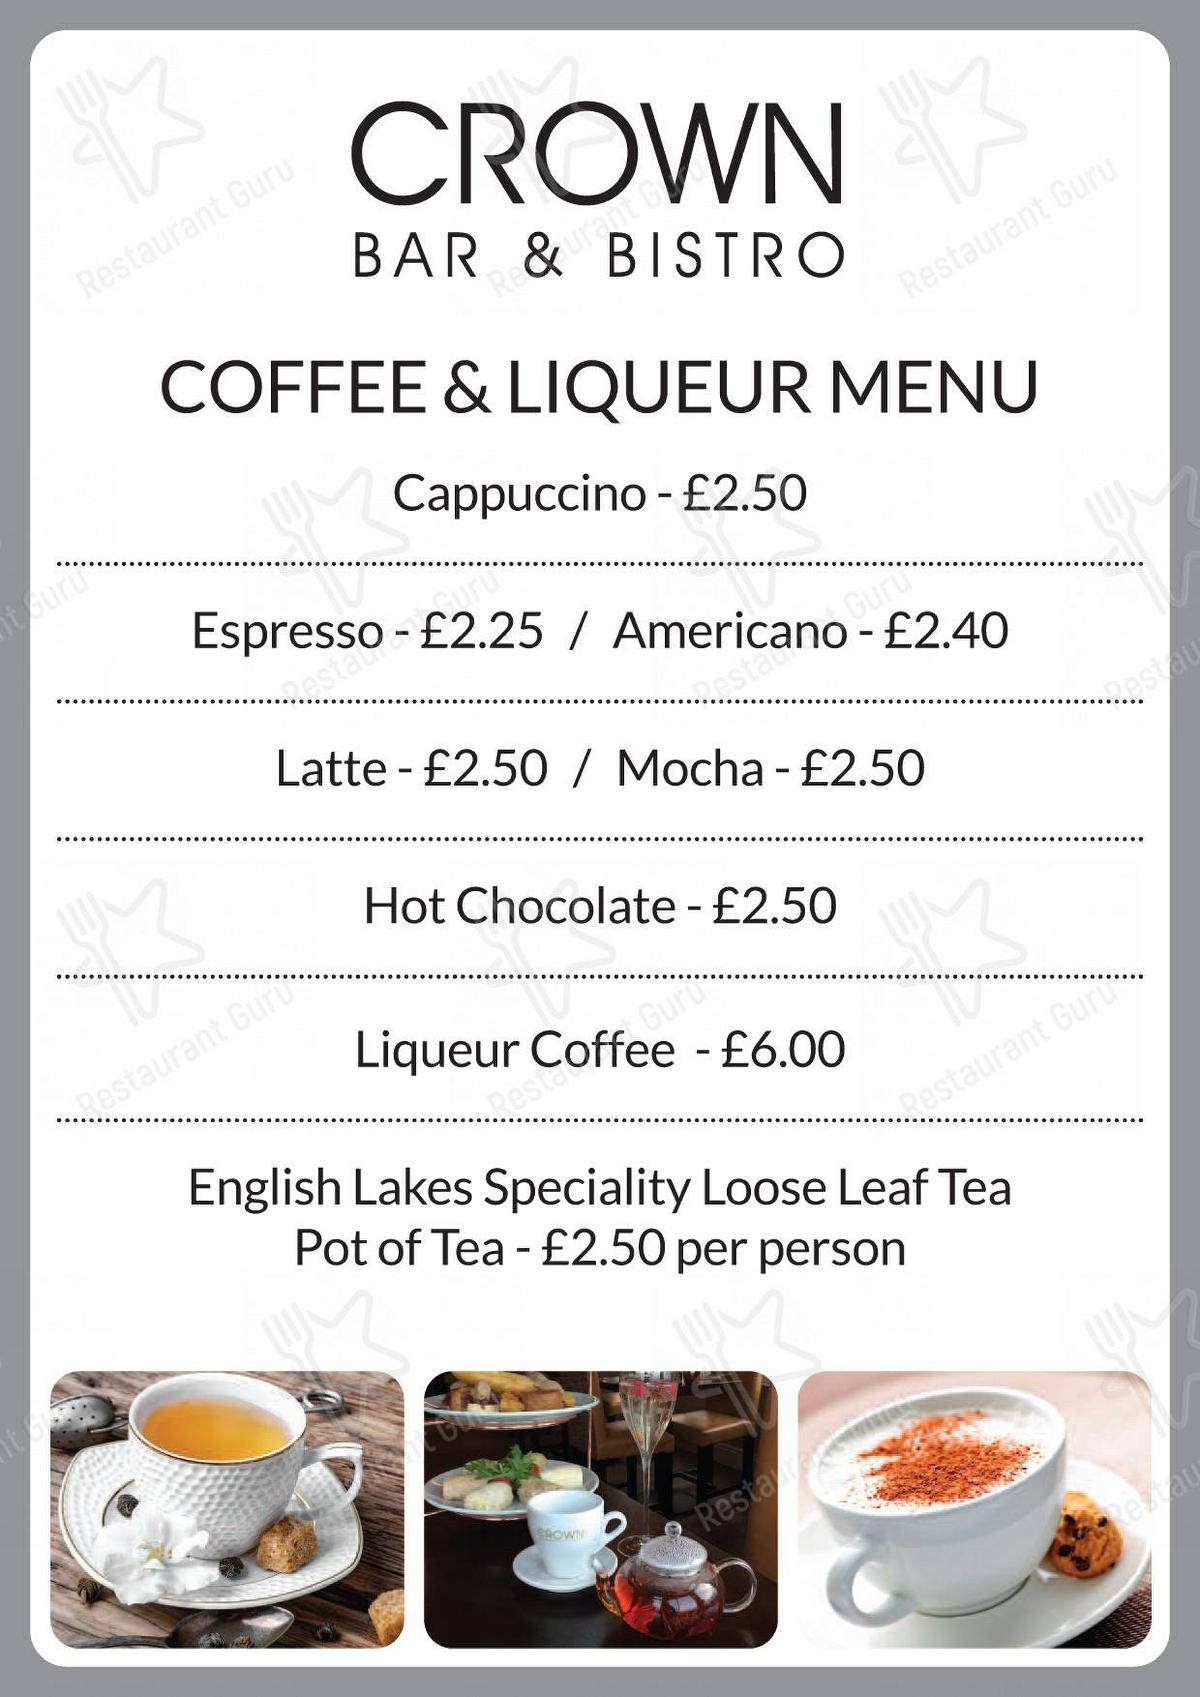 The Crown Bar & Bistro menu - dishes and beverages